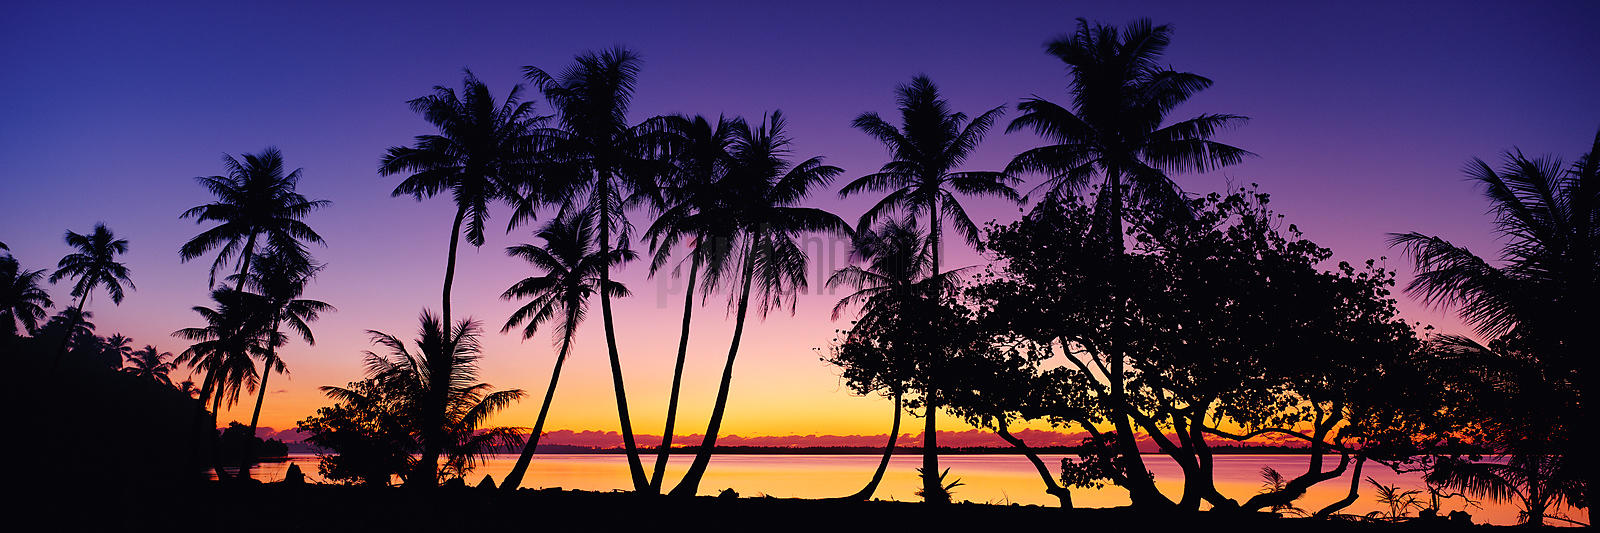 Silhouette of Palm Trees on Bora Bora Sunset